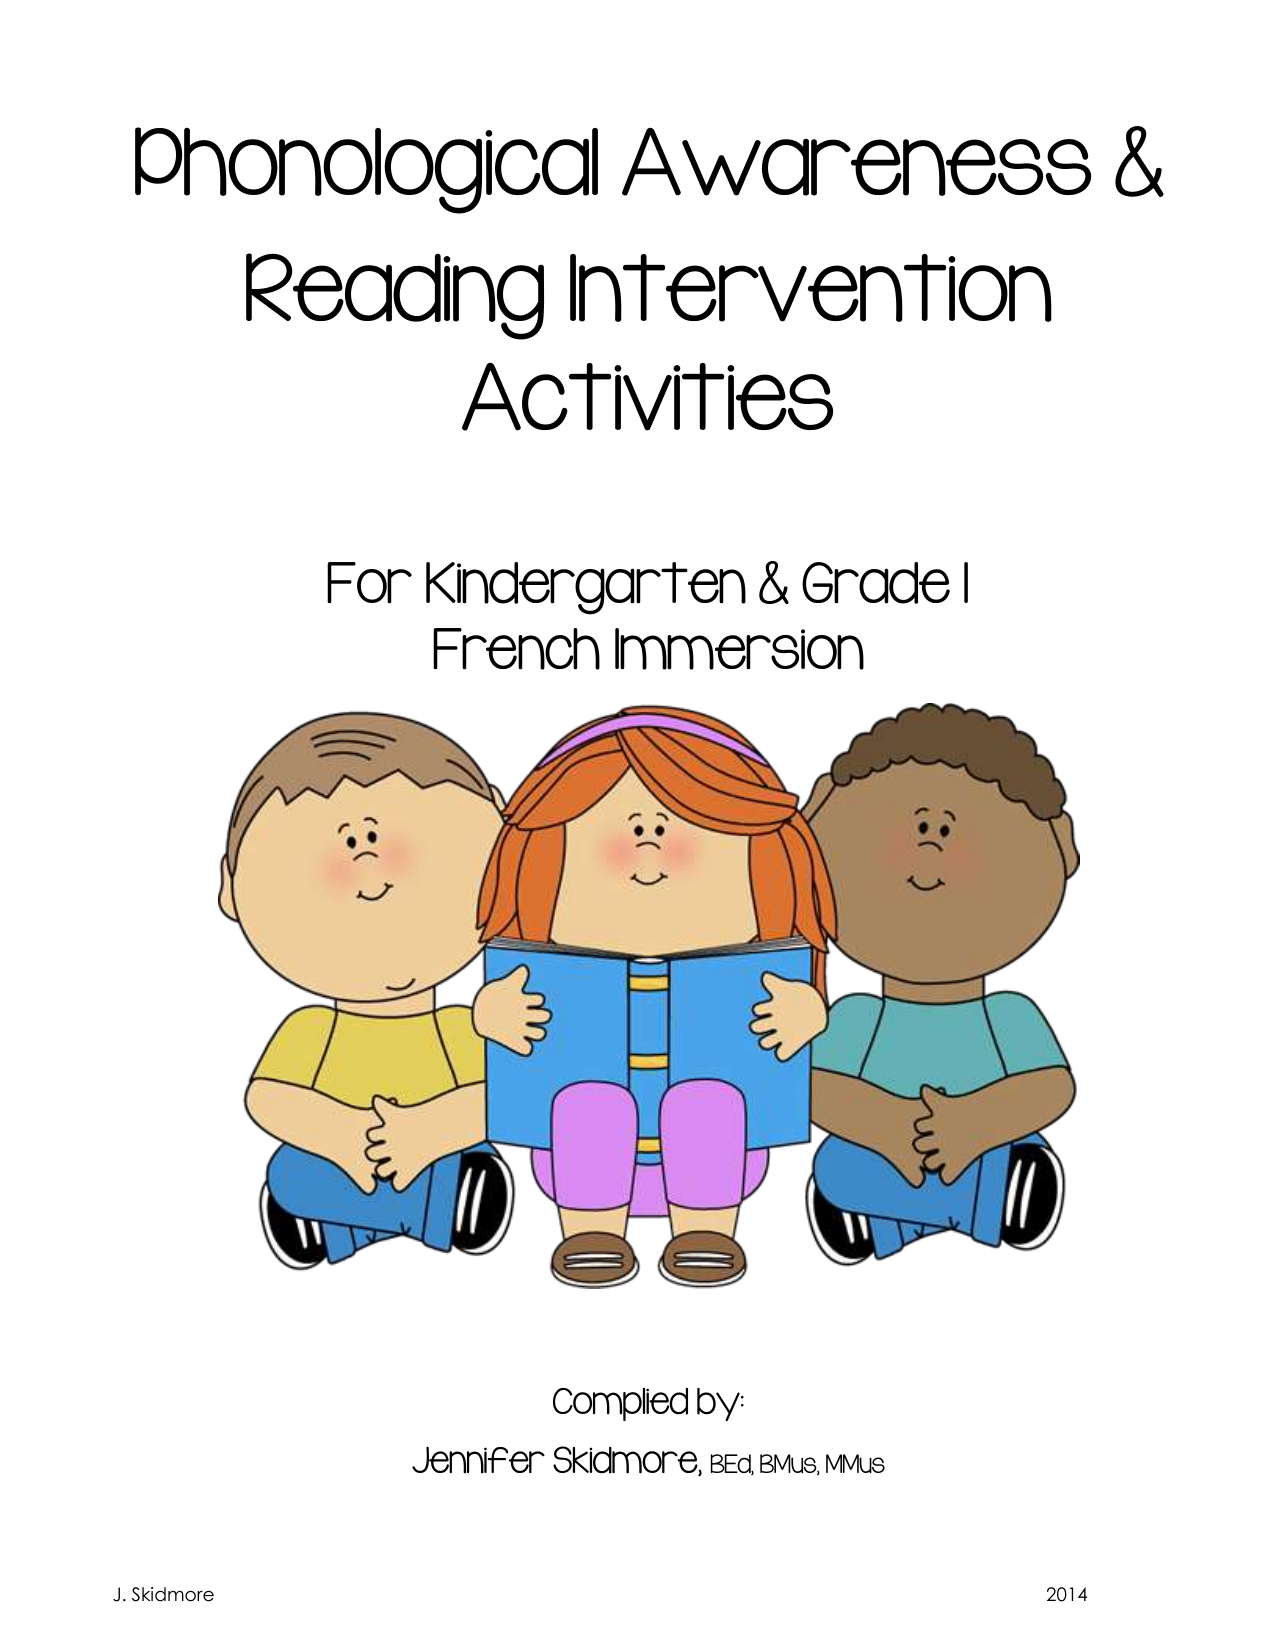 Phonological Awareness Skills Activity List for Grade 1 French Immersion Resource Preview